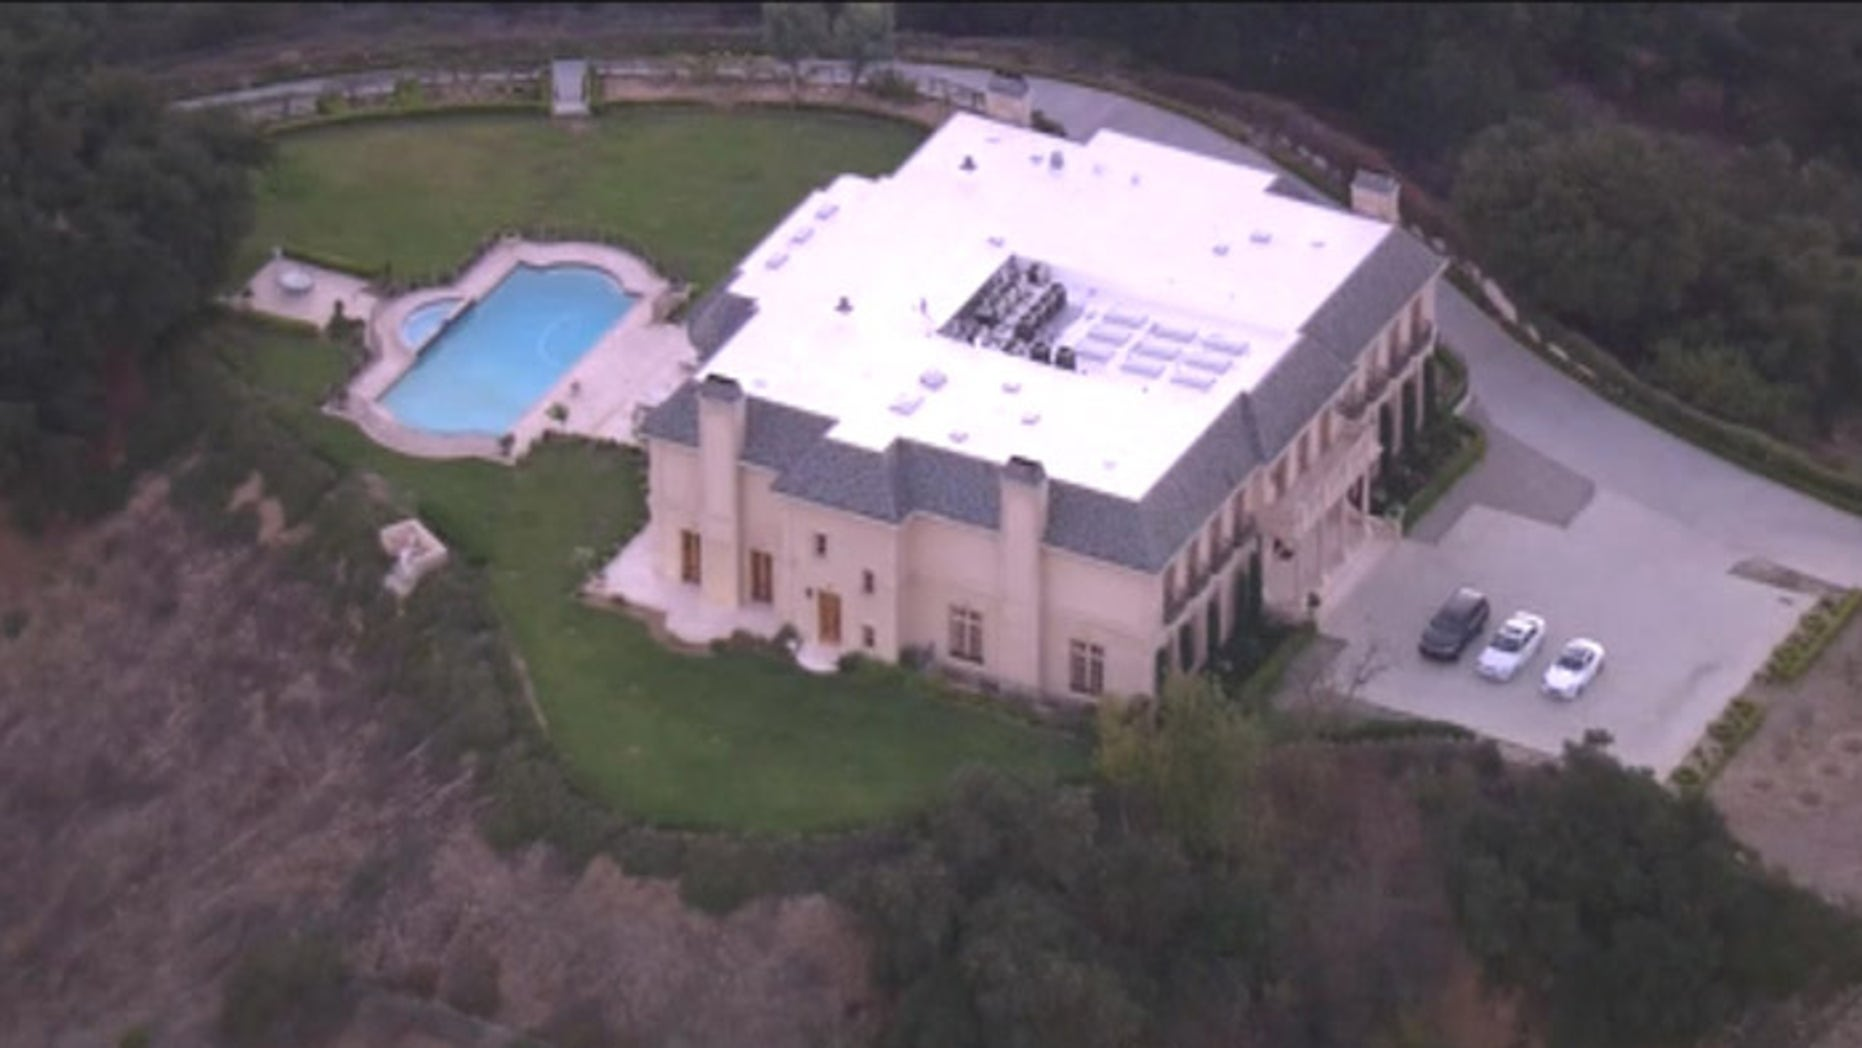 This is the rented mansion in which a Saudi prince allegedly sexually assaulted a maid. (Fox News)